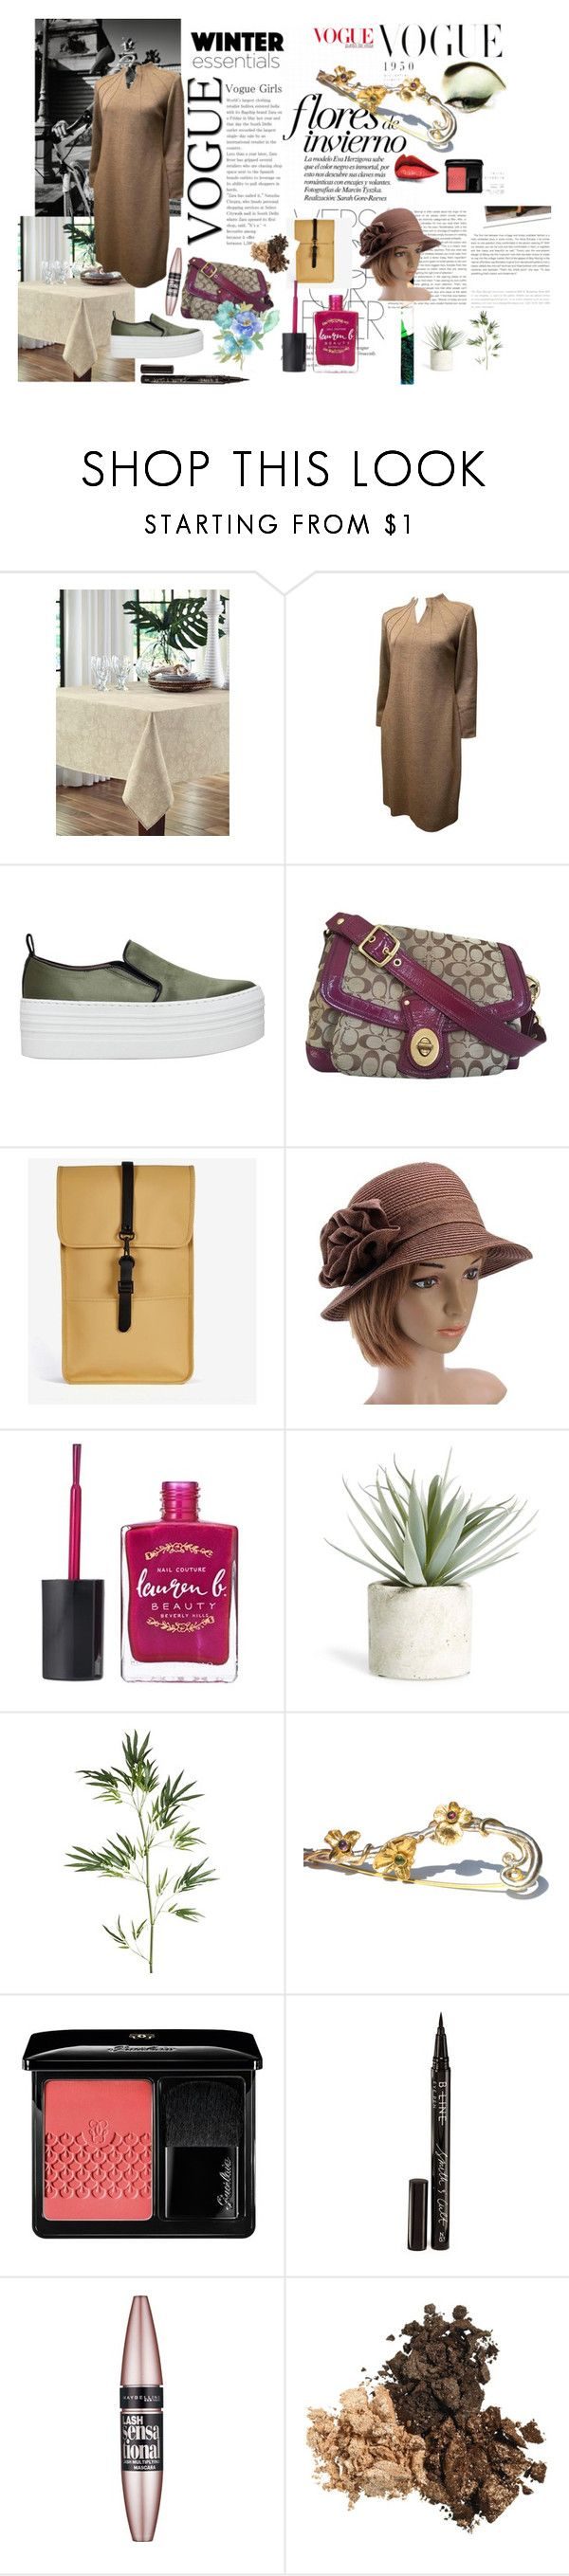 """""""Example set for 'Worthy of a sack dress!' contest!/Sack dress"""" by sarah-m-smith ❤ liked on Polyvore featuring Stop Staring!, Fraîche Maison, Burton, Carolina Herrera, KG Kurt Geiger, Coach, Chanel, Rains, Lauren B. Beauty and Allstate Floral"""